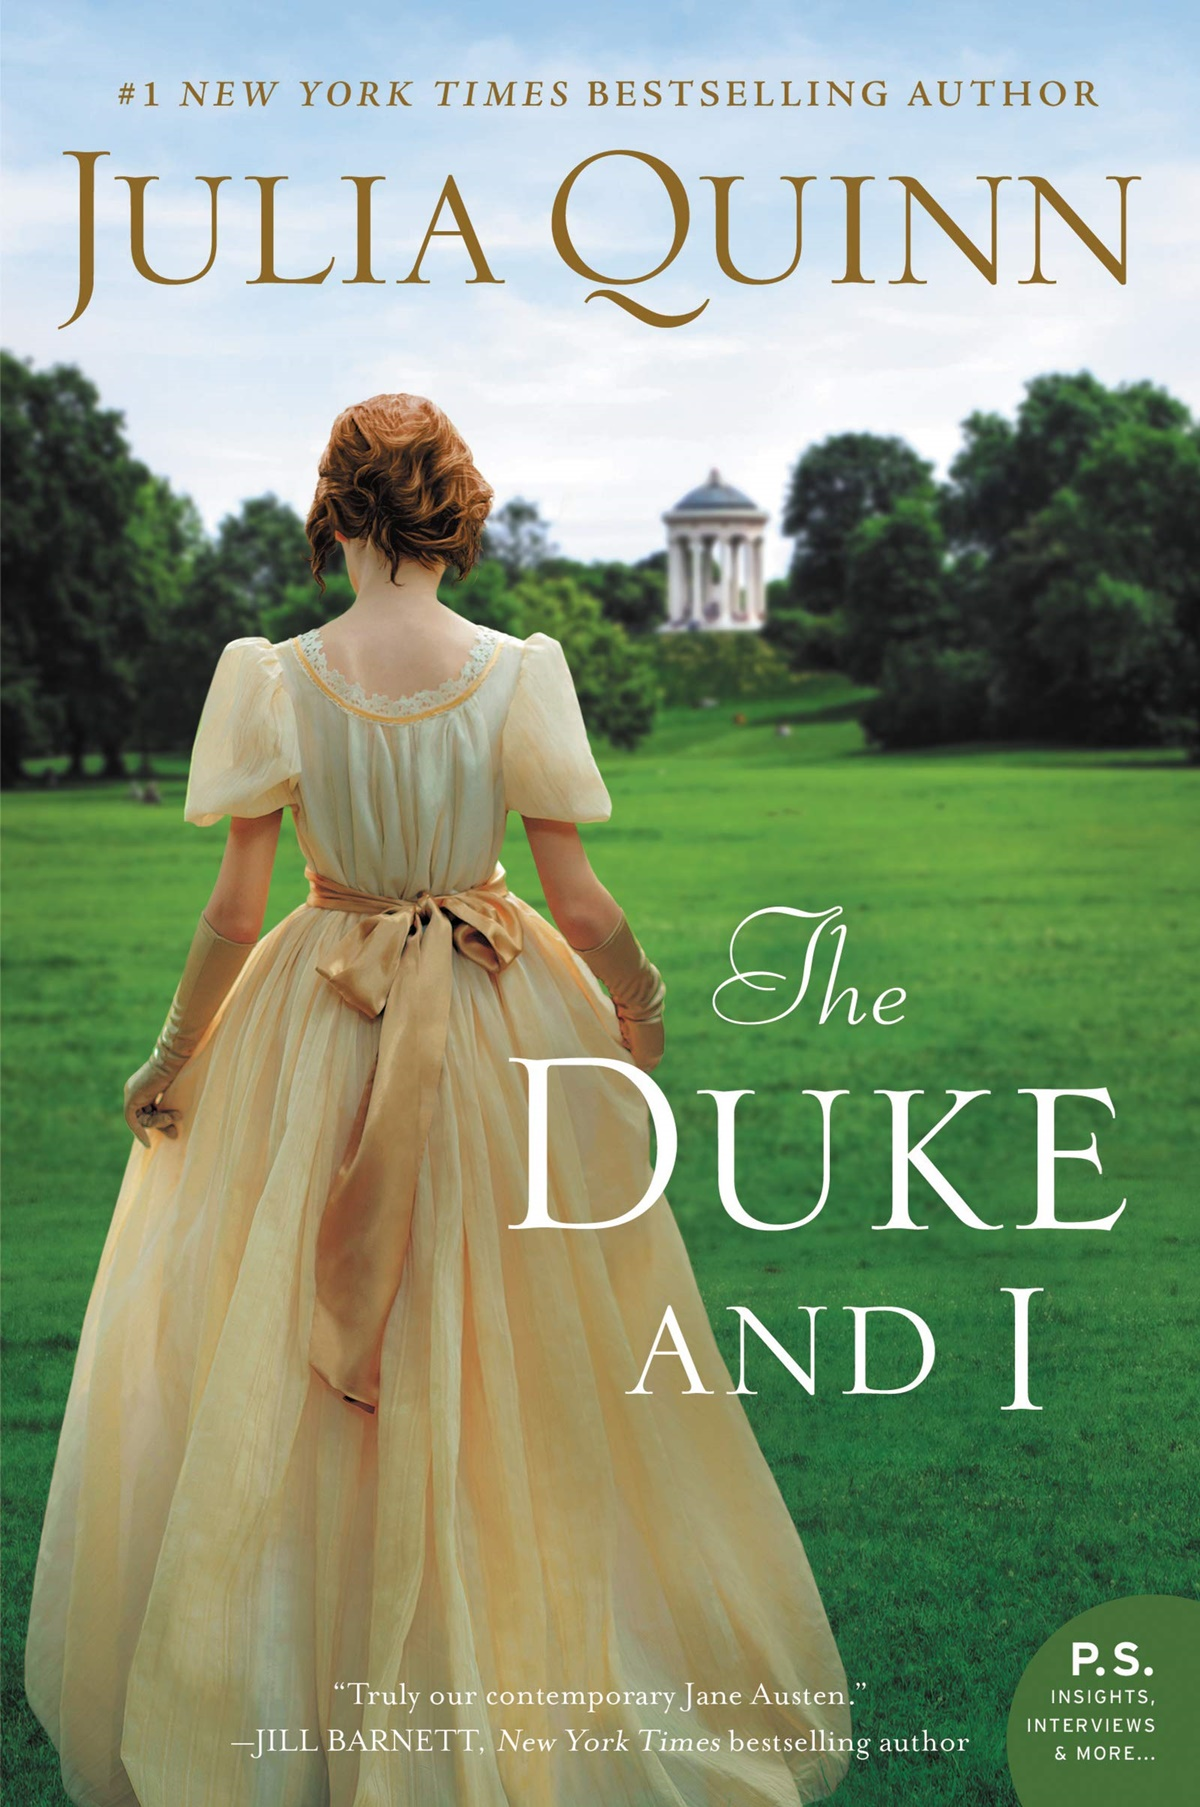 Julia Quinn Books, cover of The Duke and I by Julia Quinn, books